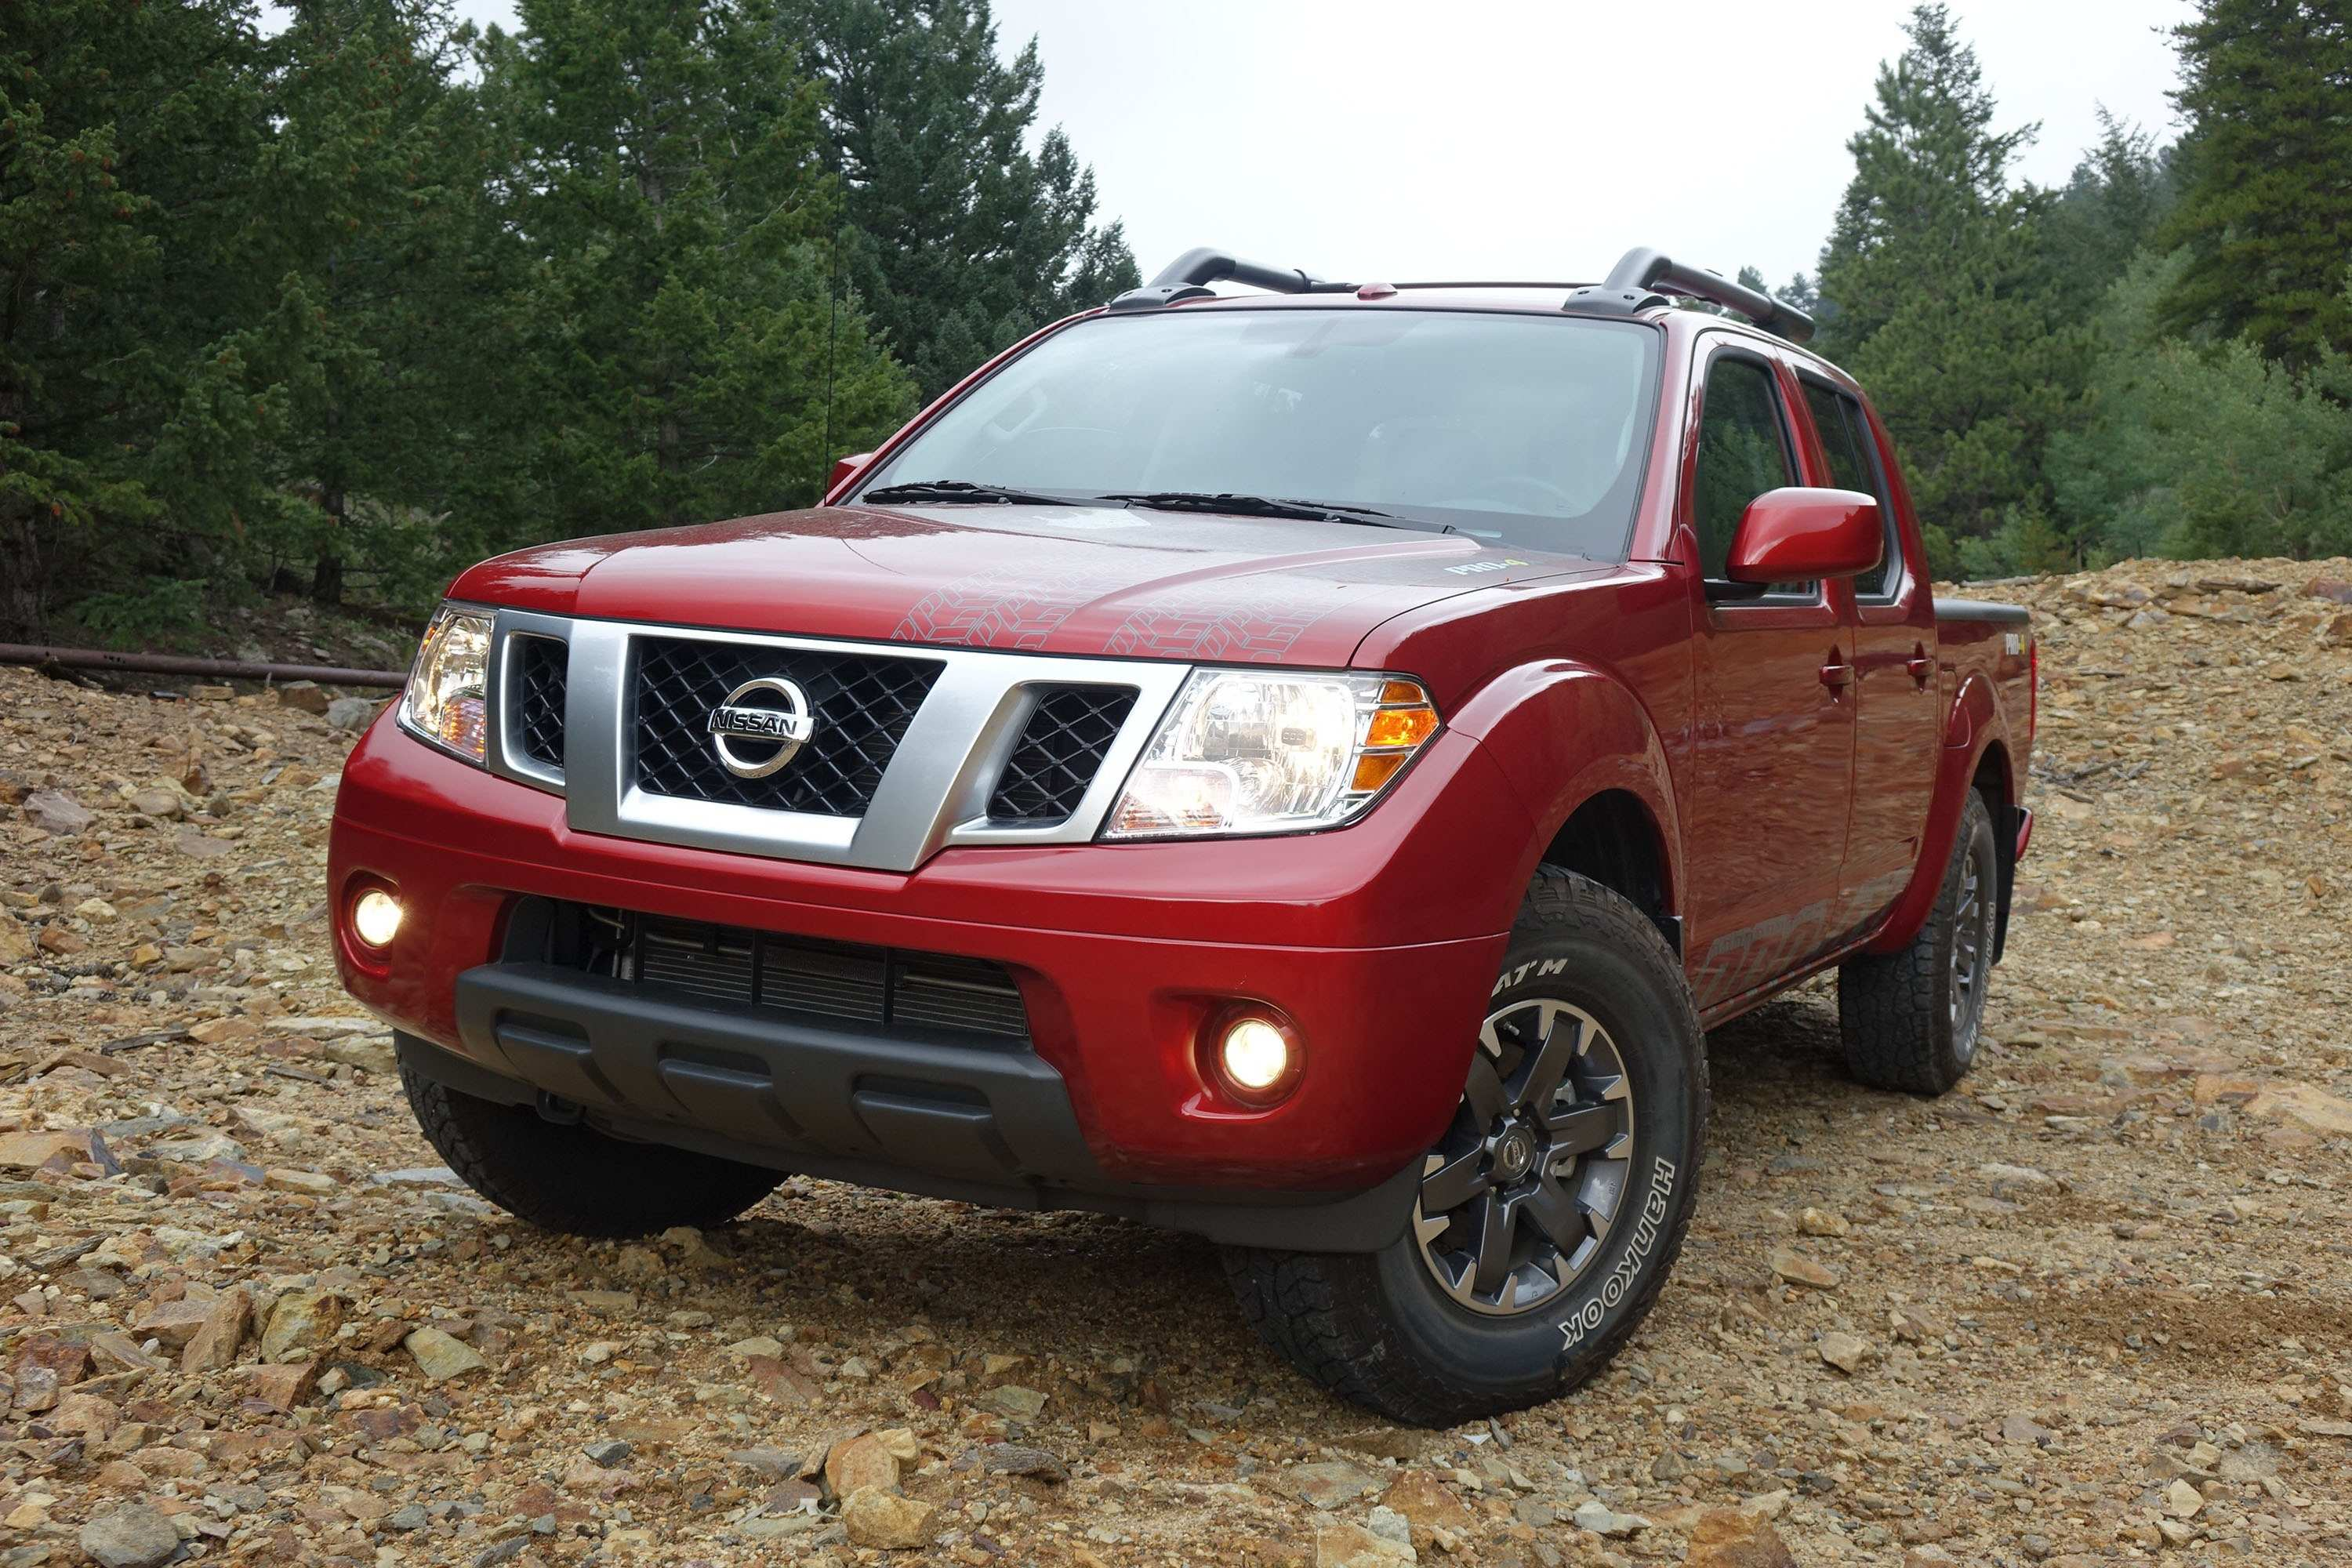 53 Concept of New 2019 Nissan Frontier Pro 4X Release Date Price And Review Model with New 2019 Nissan Frontier Pro 4X Release Date Price And Review